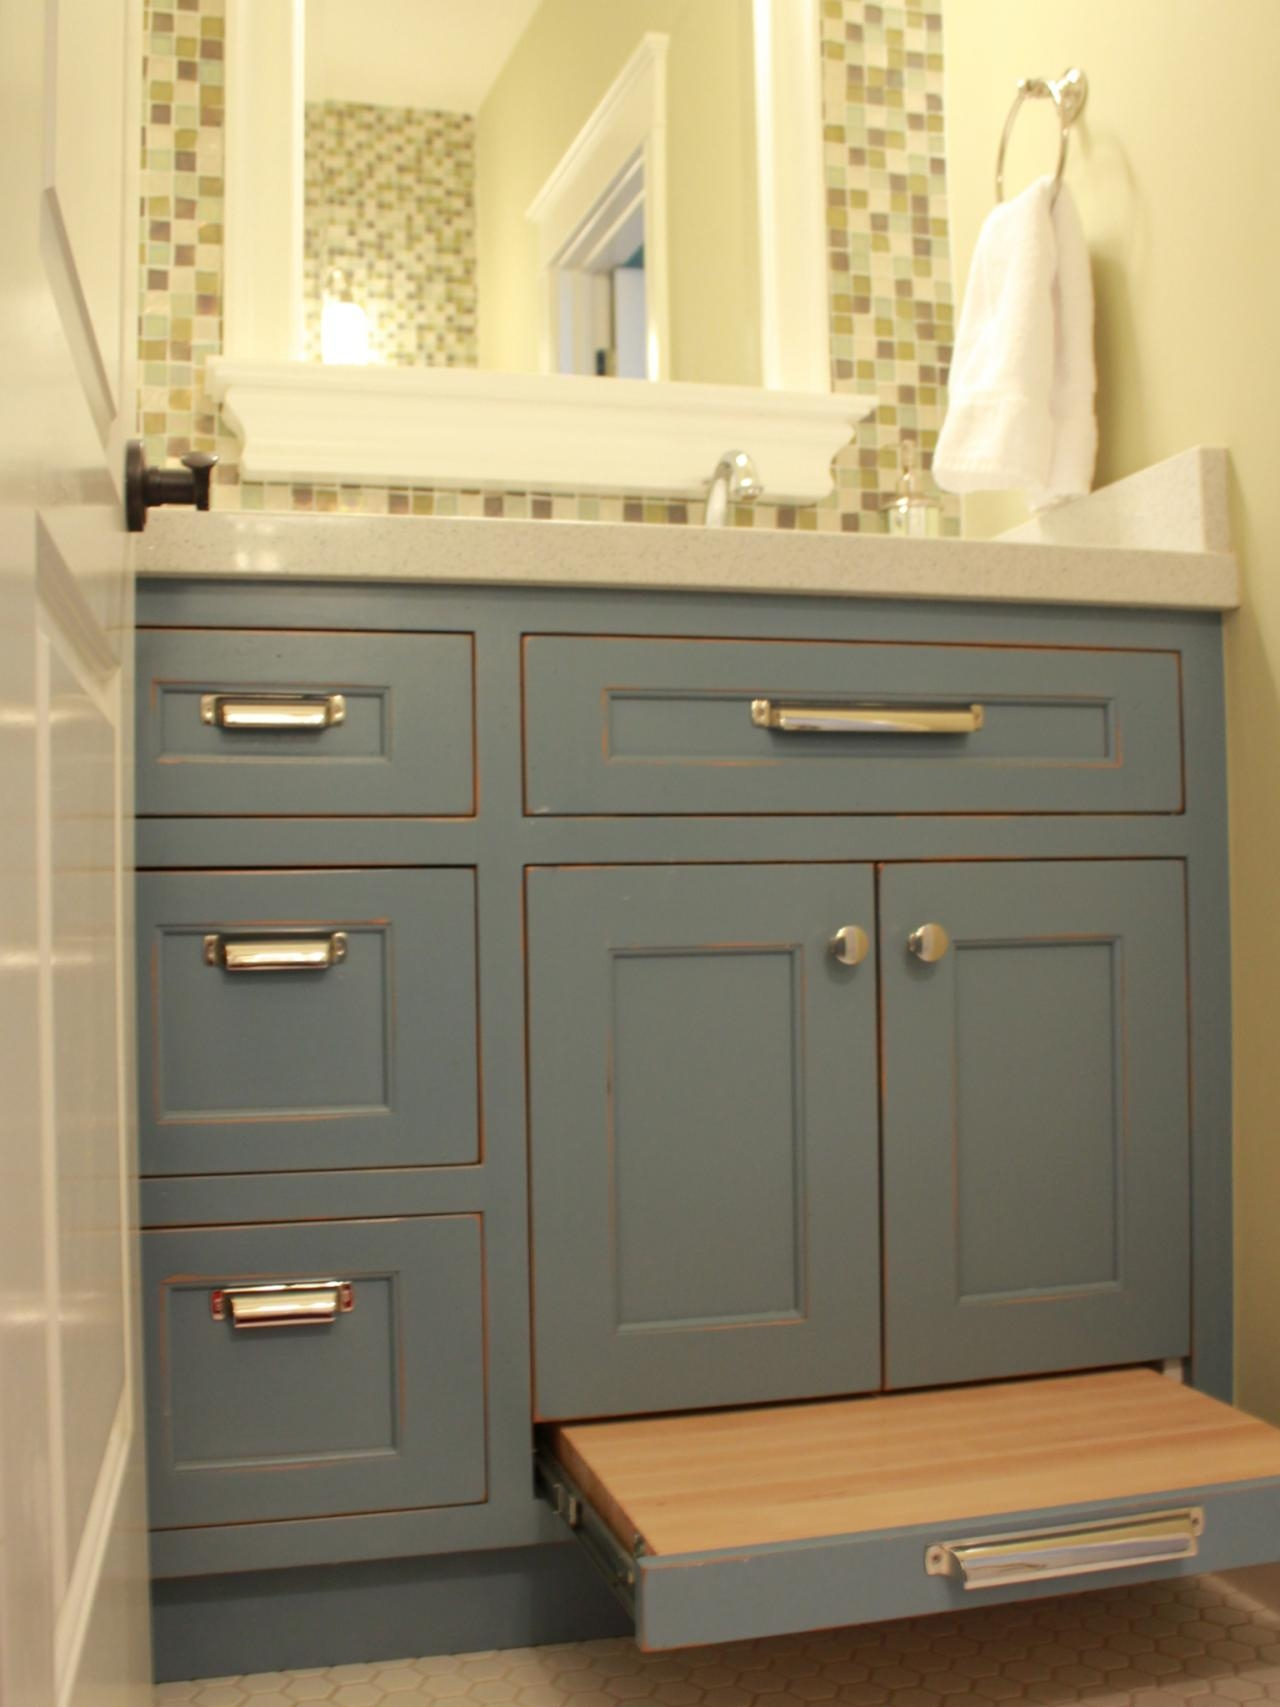 18 Deep Bathroom Vanity Base